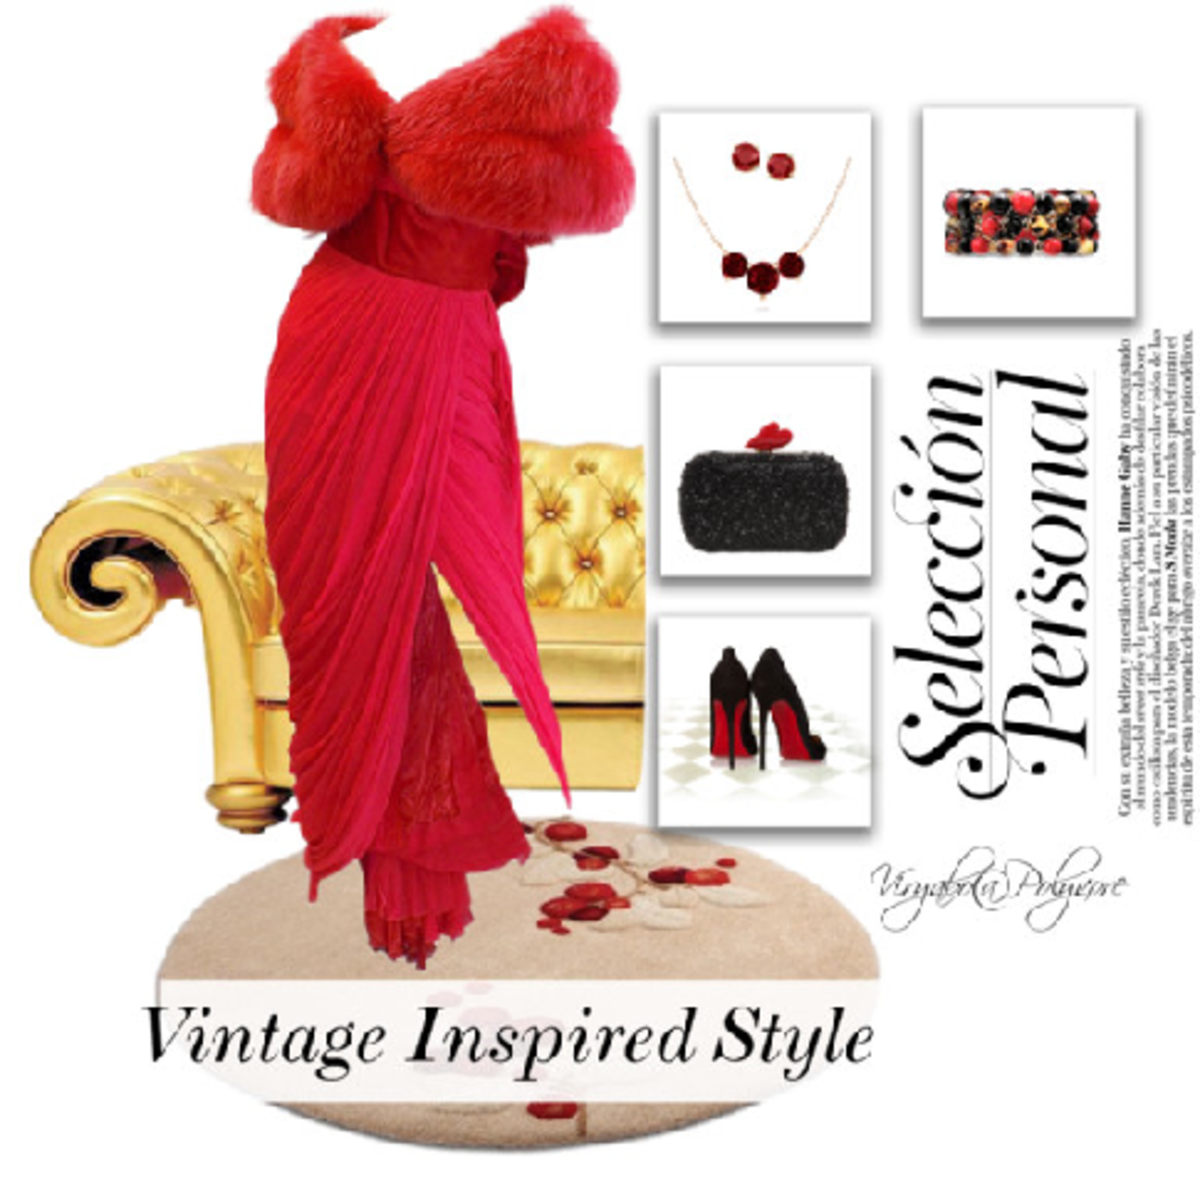 Vintage Inspired Fashion Signature - How to Create Your Own Style